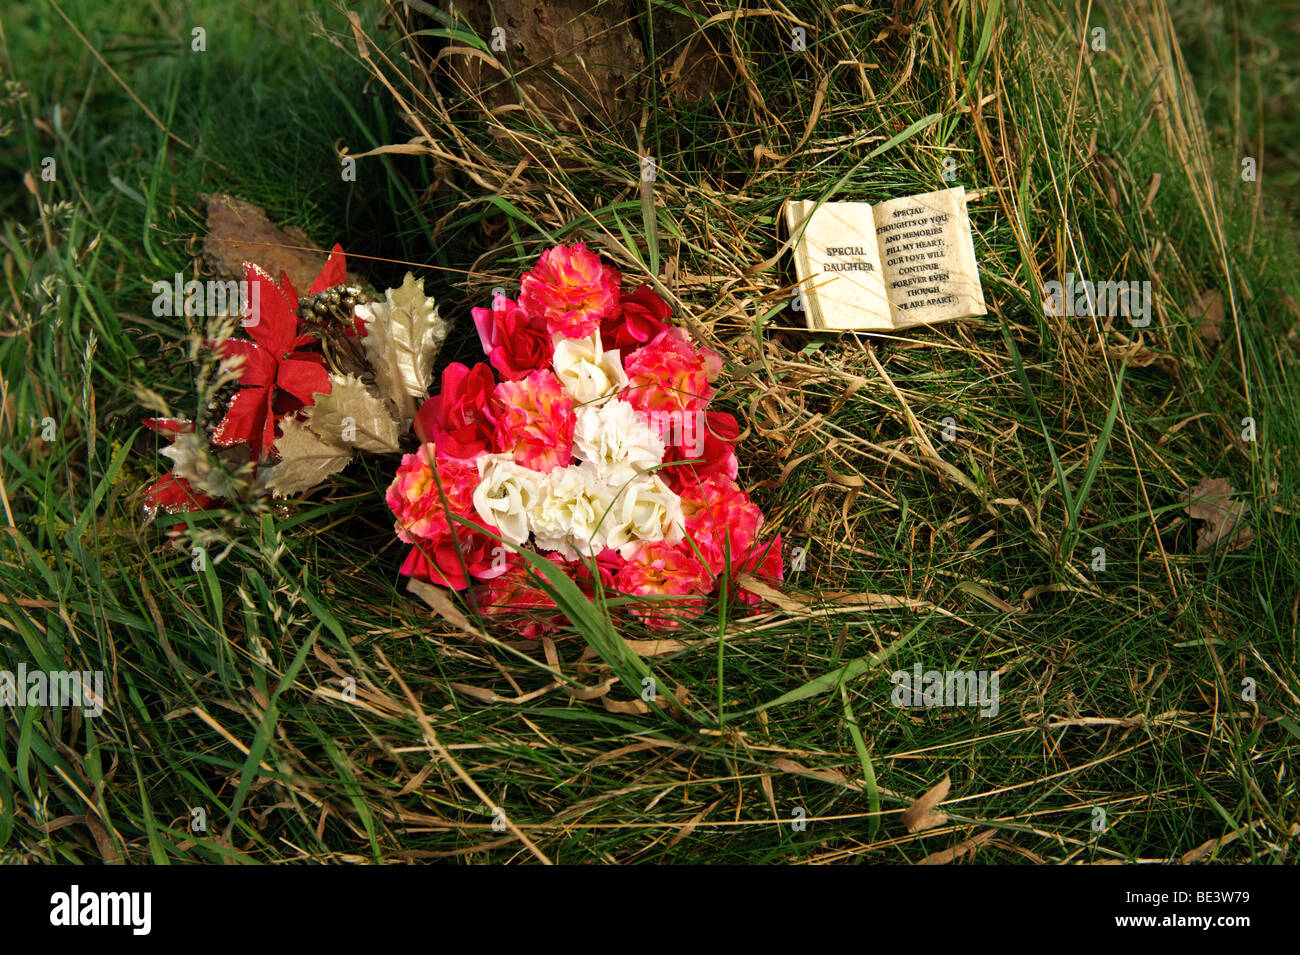 Arrangement of flowers on the ground left as a floral tribute to a dead daughter, UK - Stock Image